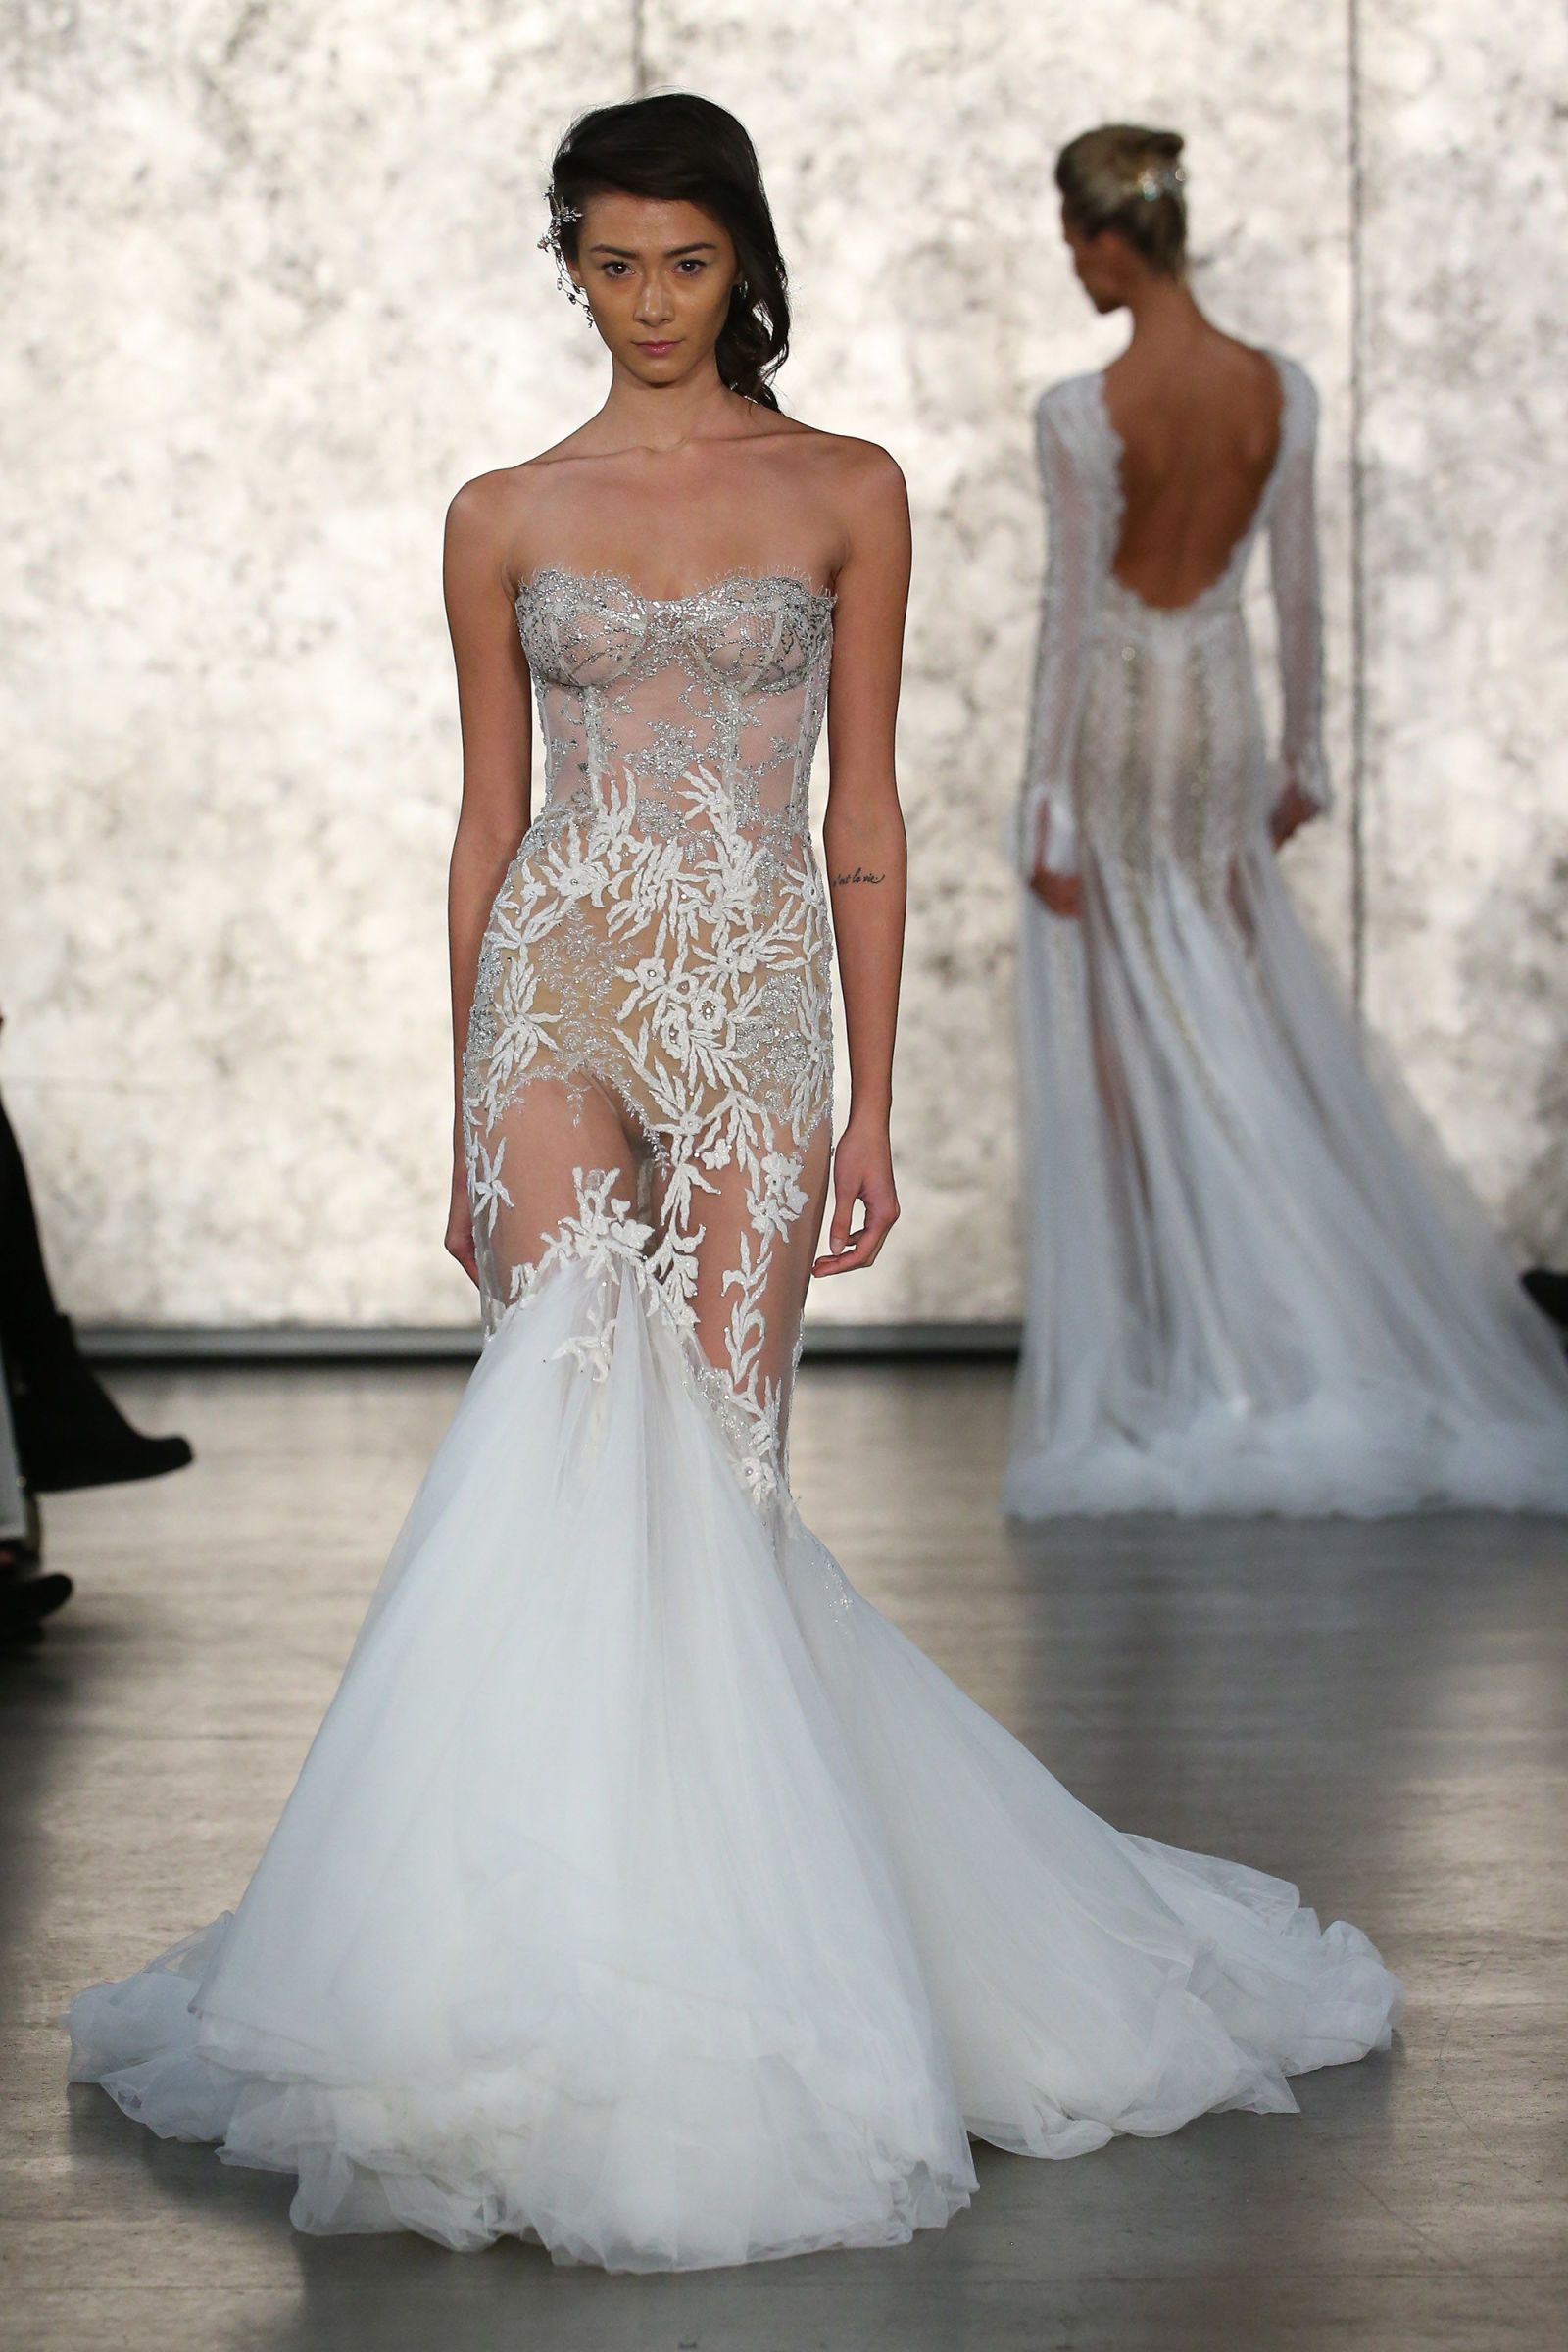 18 extra naked wedding dresses that put it all out there